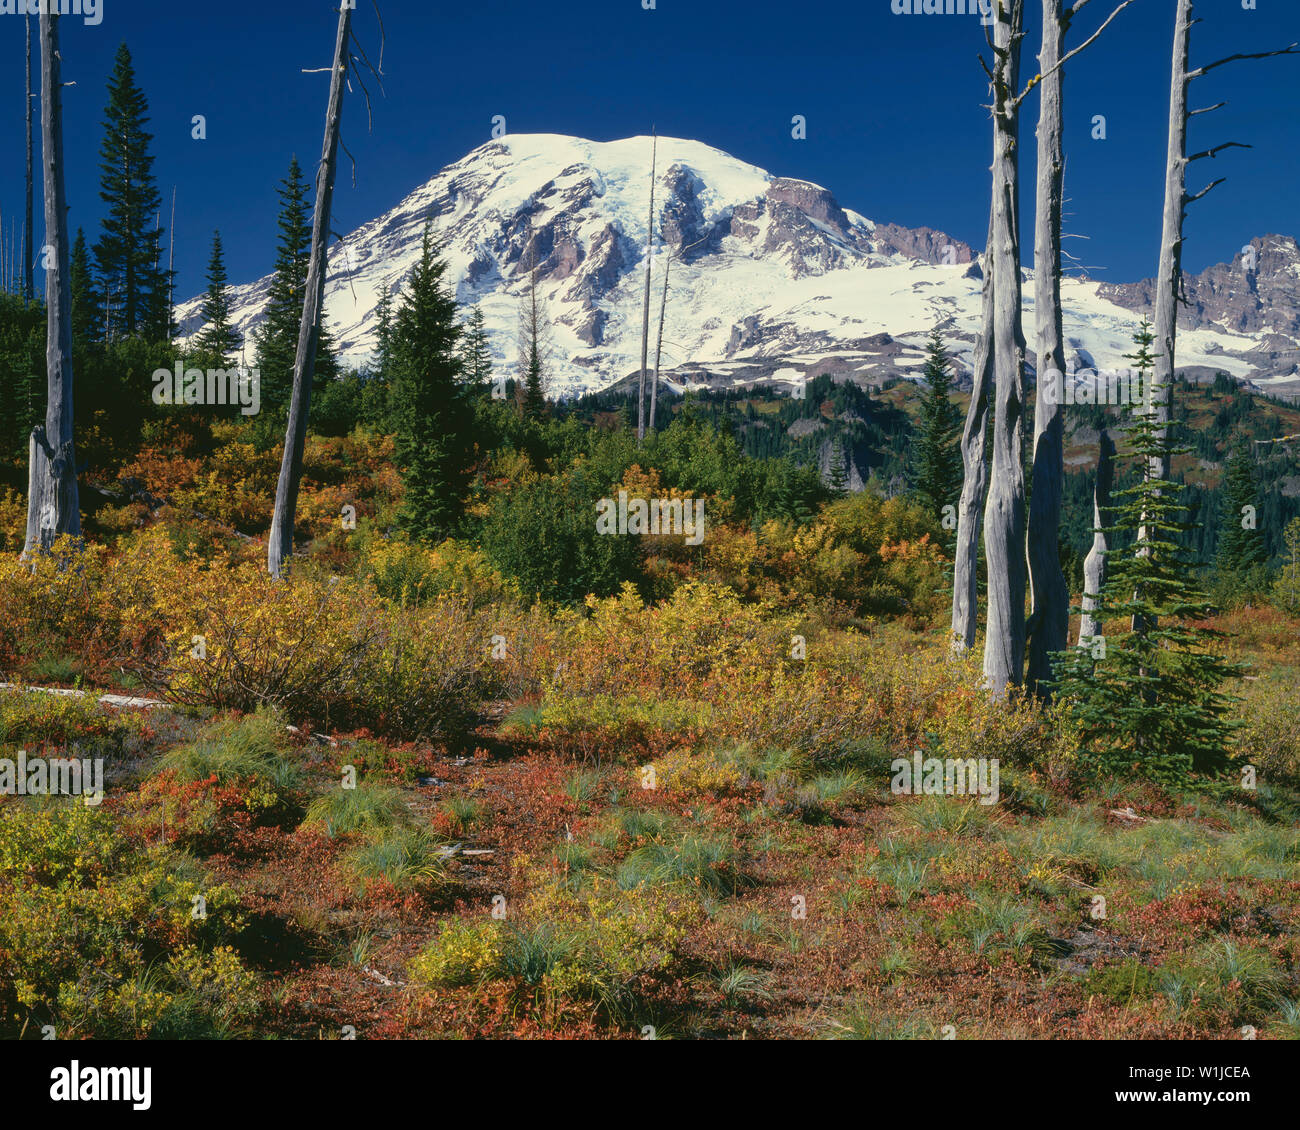 USA, Washington, Mt. Rainier National Park, South side of Mt. Rainier is framed by fire-caused snags. - Stock Image